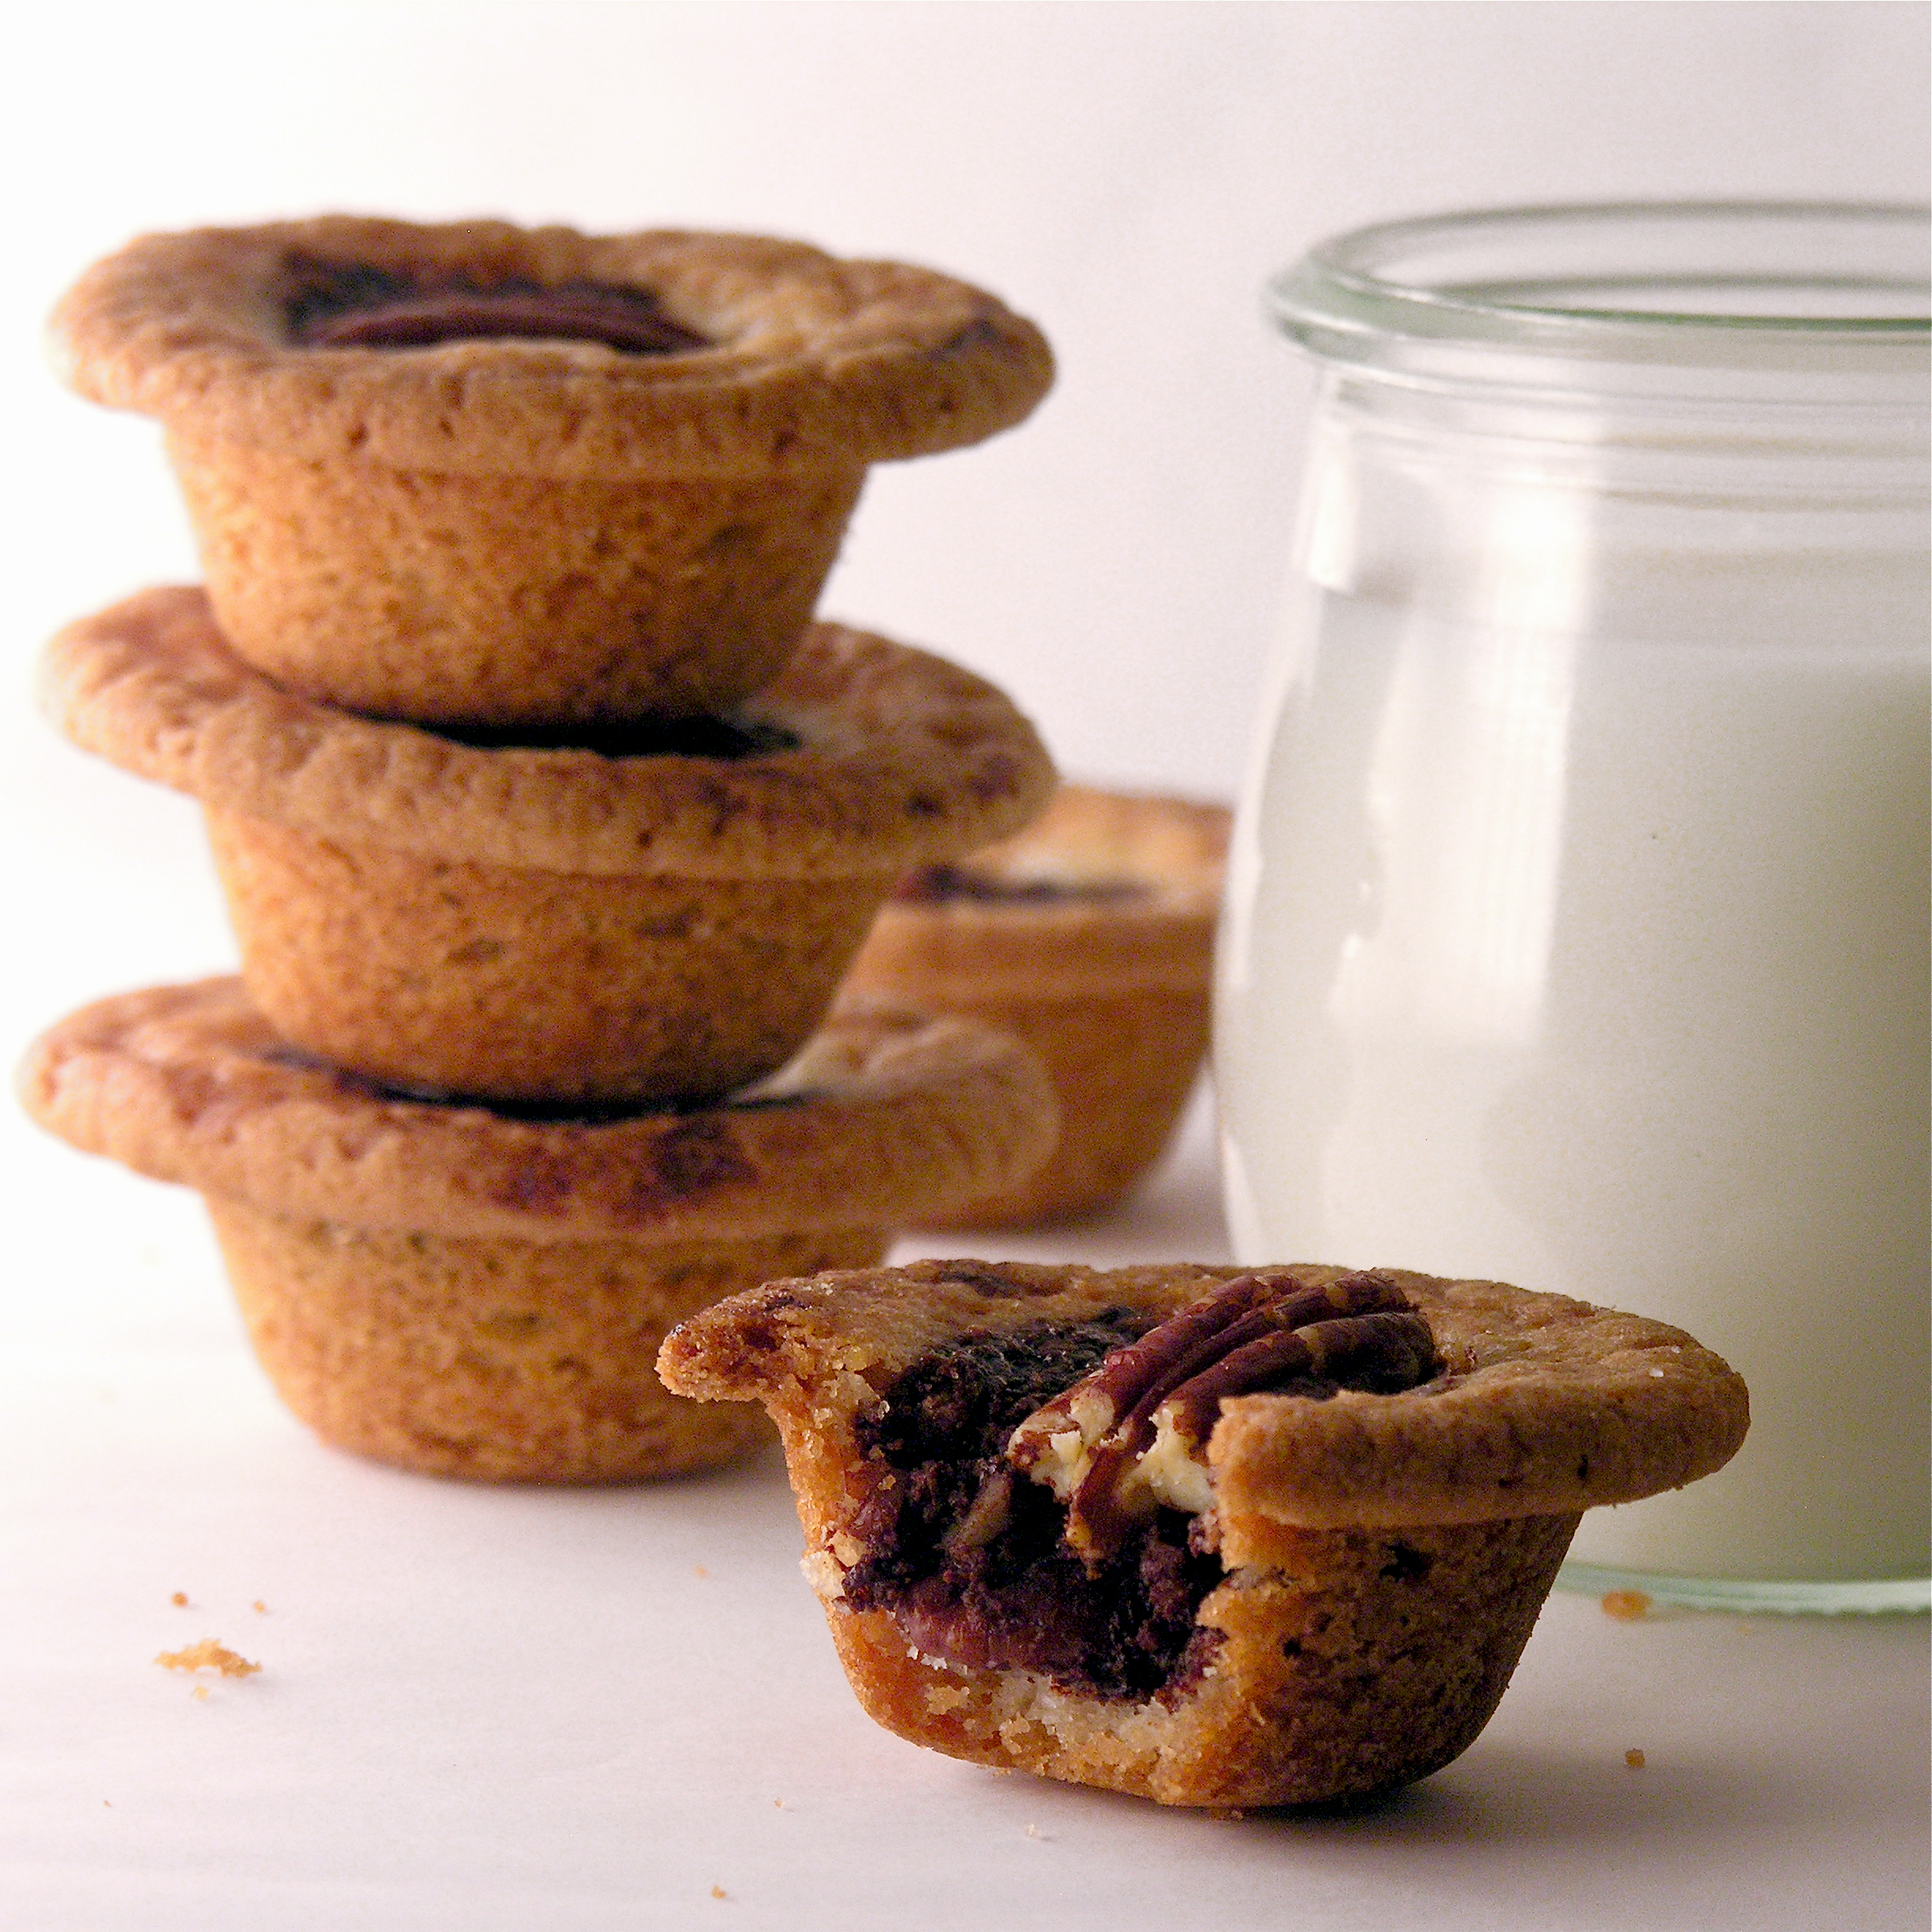 Dark chocolate and pecans baked in a soft sugar cookie cup–yum!